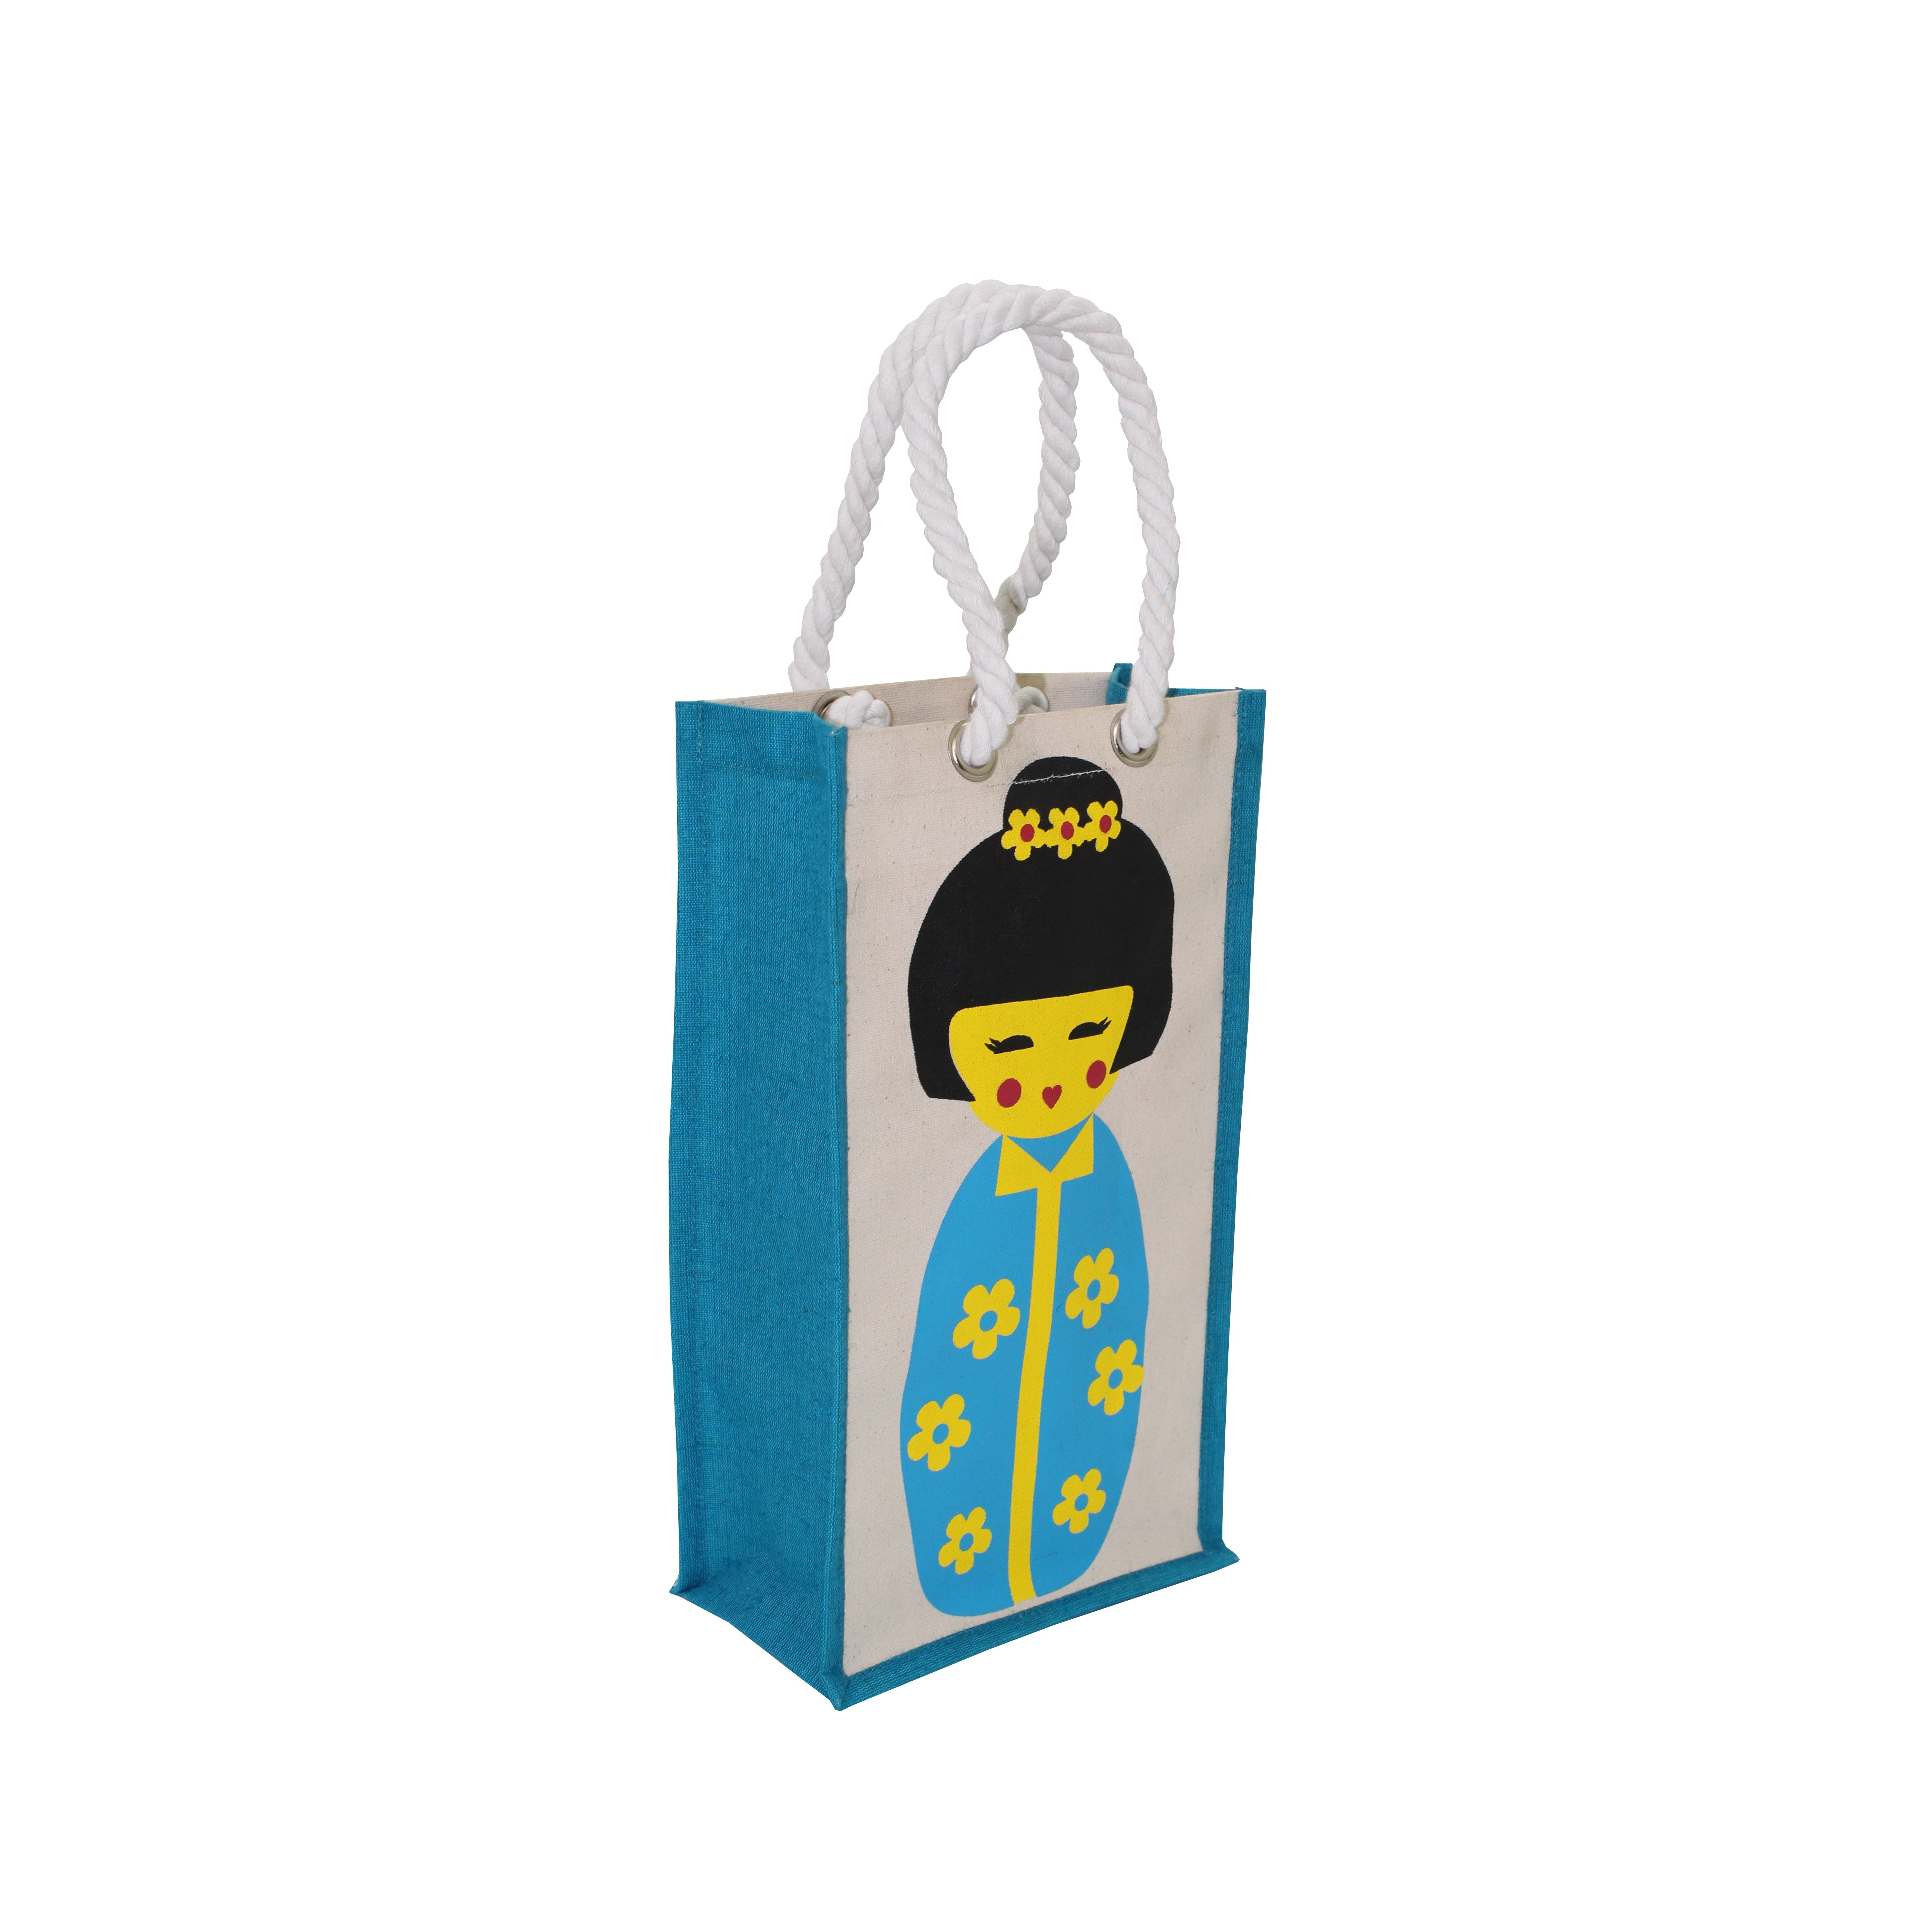 10 Oz PP Laminated Canvas Tote Bag With Twisted Rope Handle